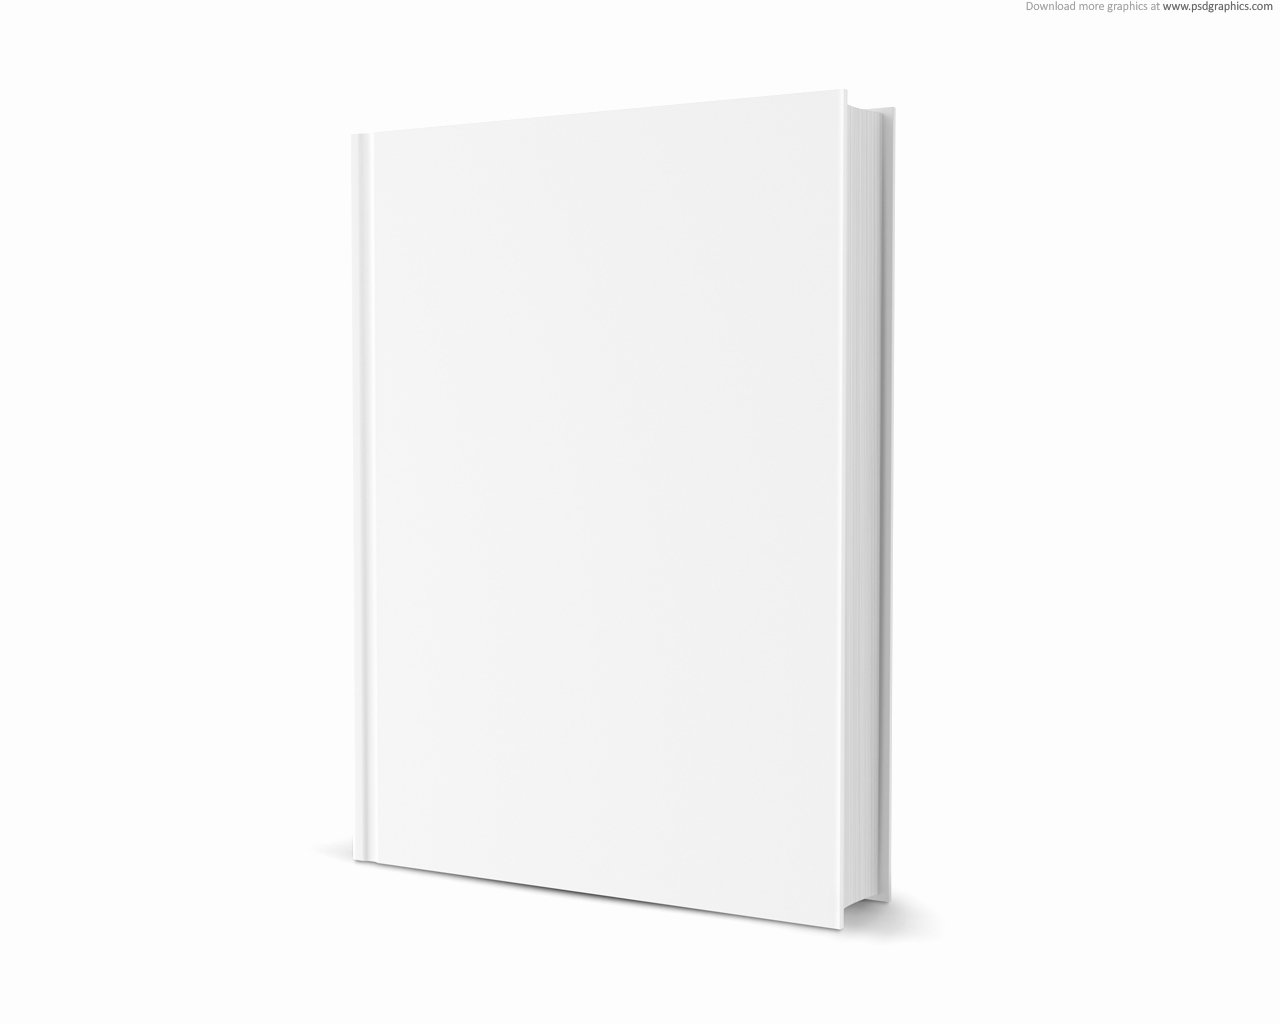 14 Free Blank Book Cover Template Psd Blank Book